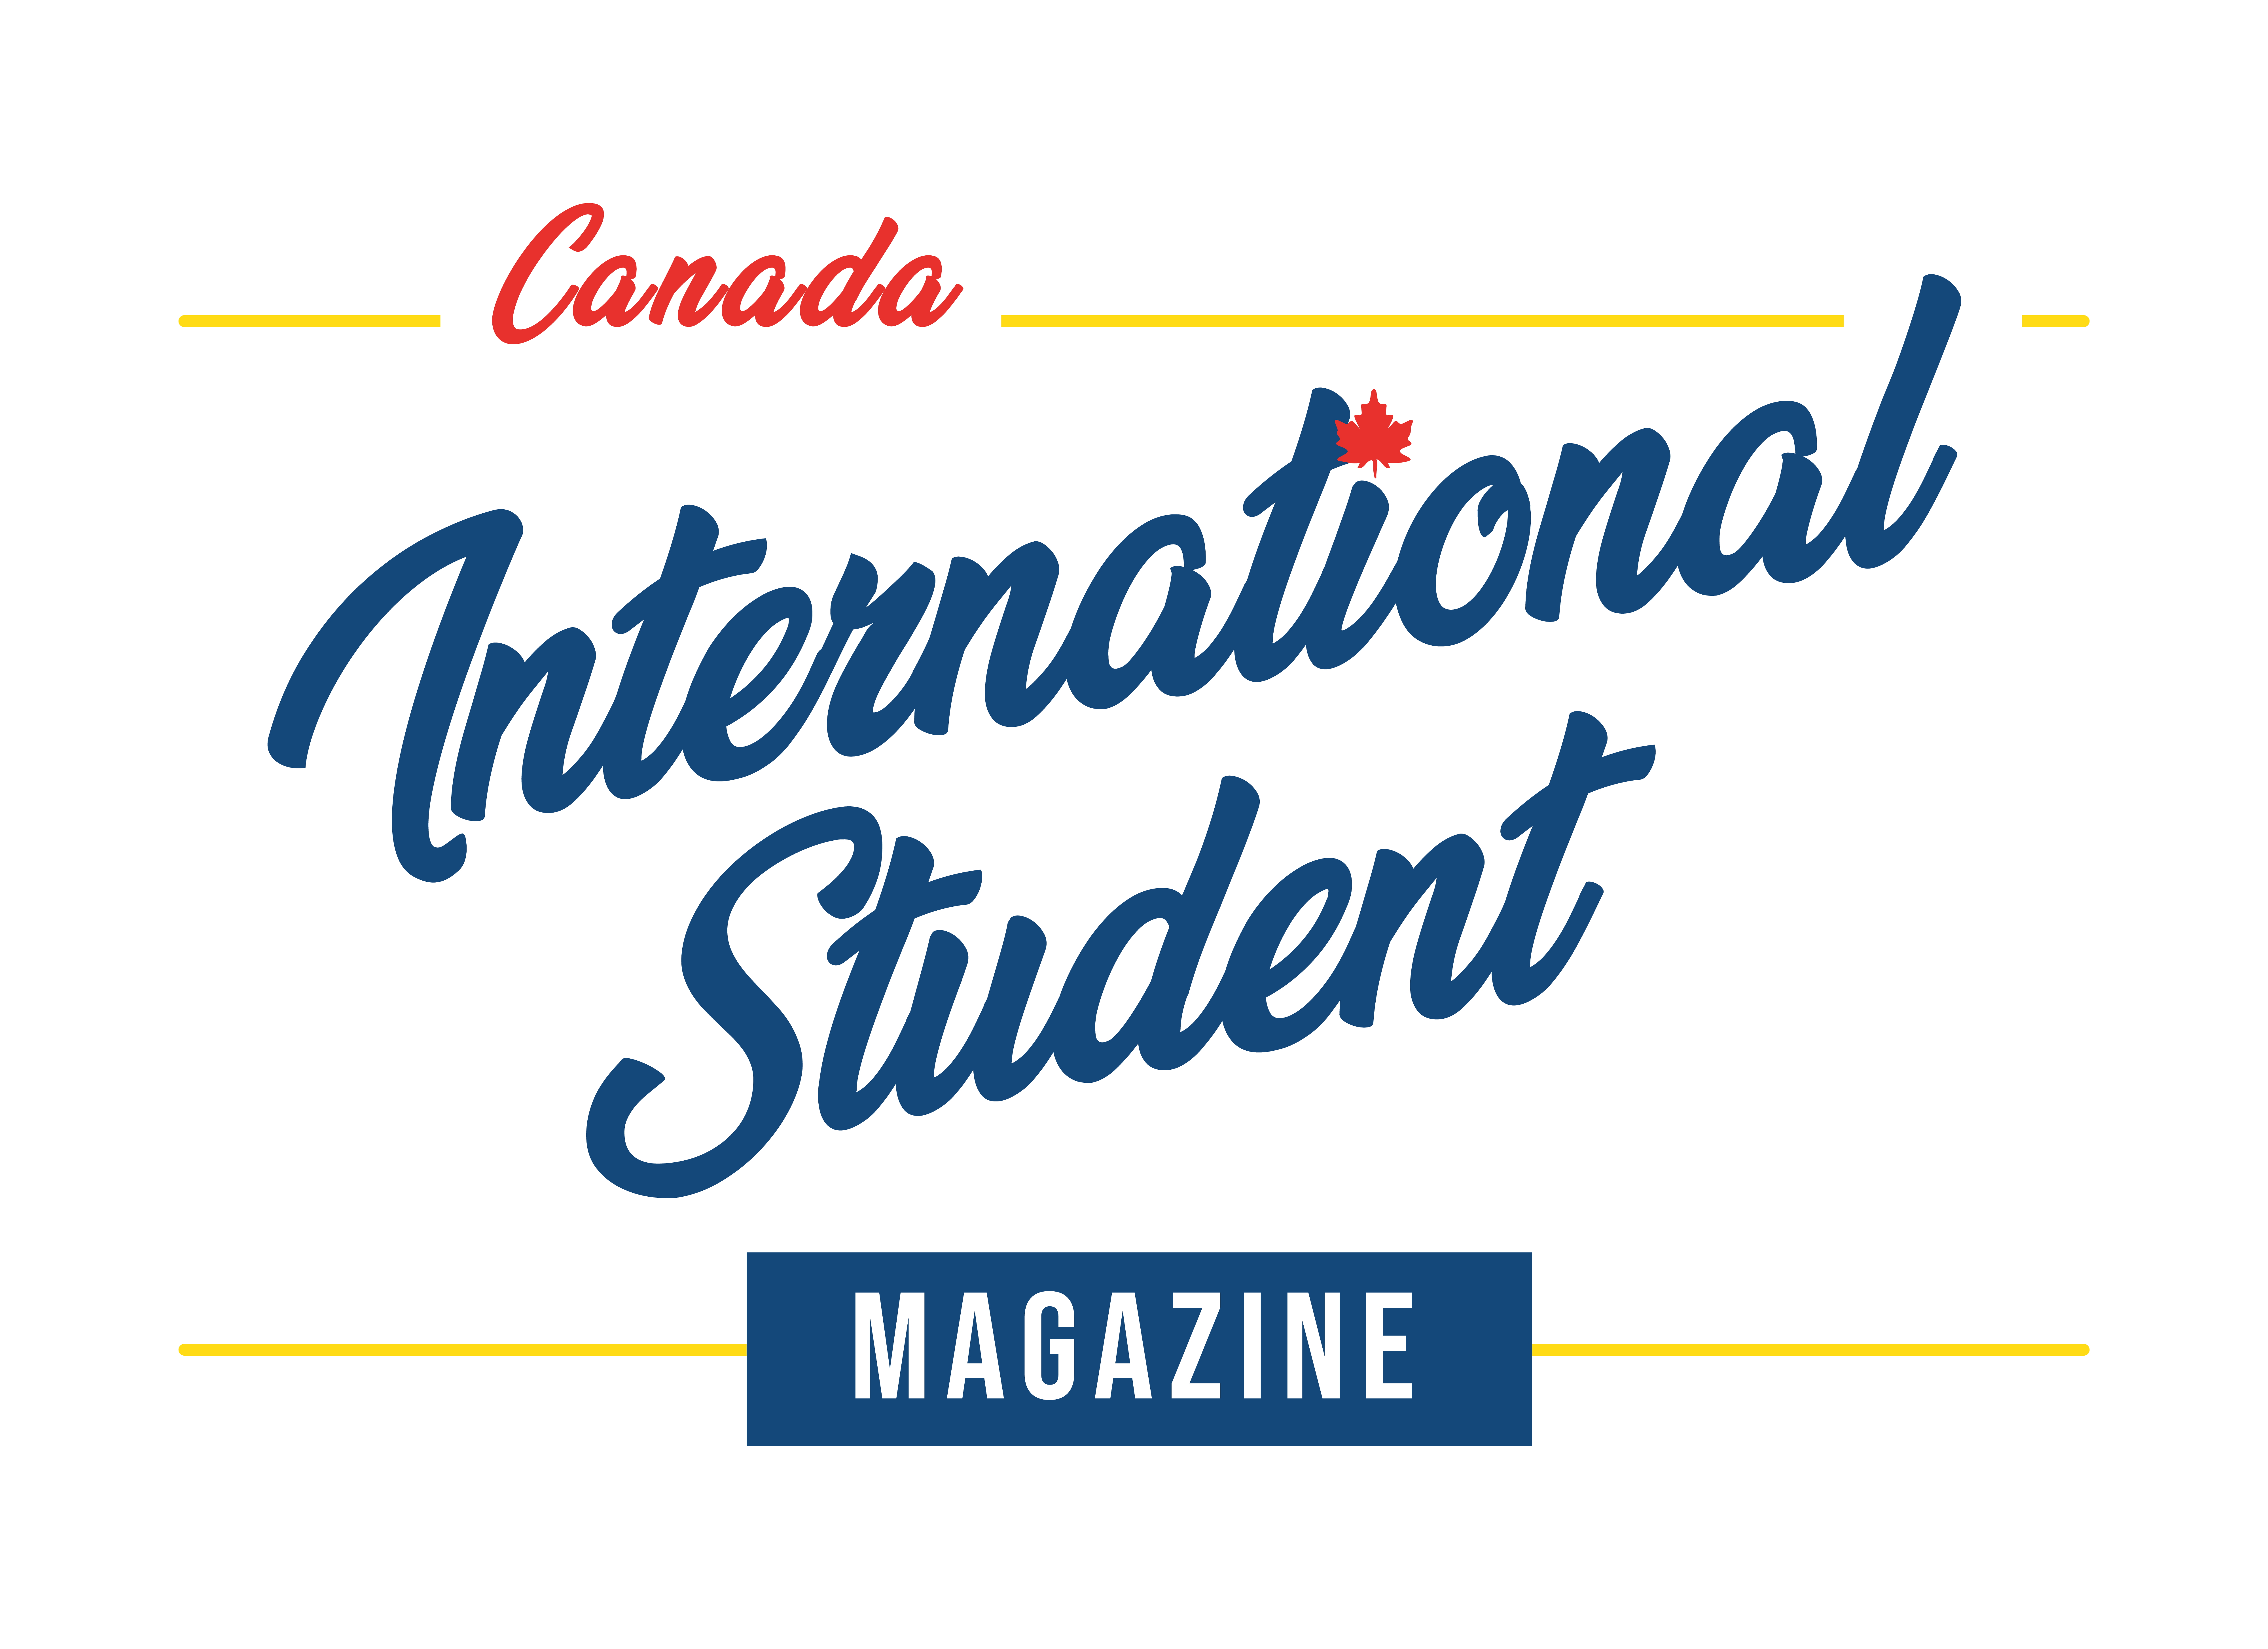 CISM – Canada International Student Magazine